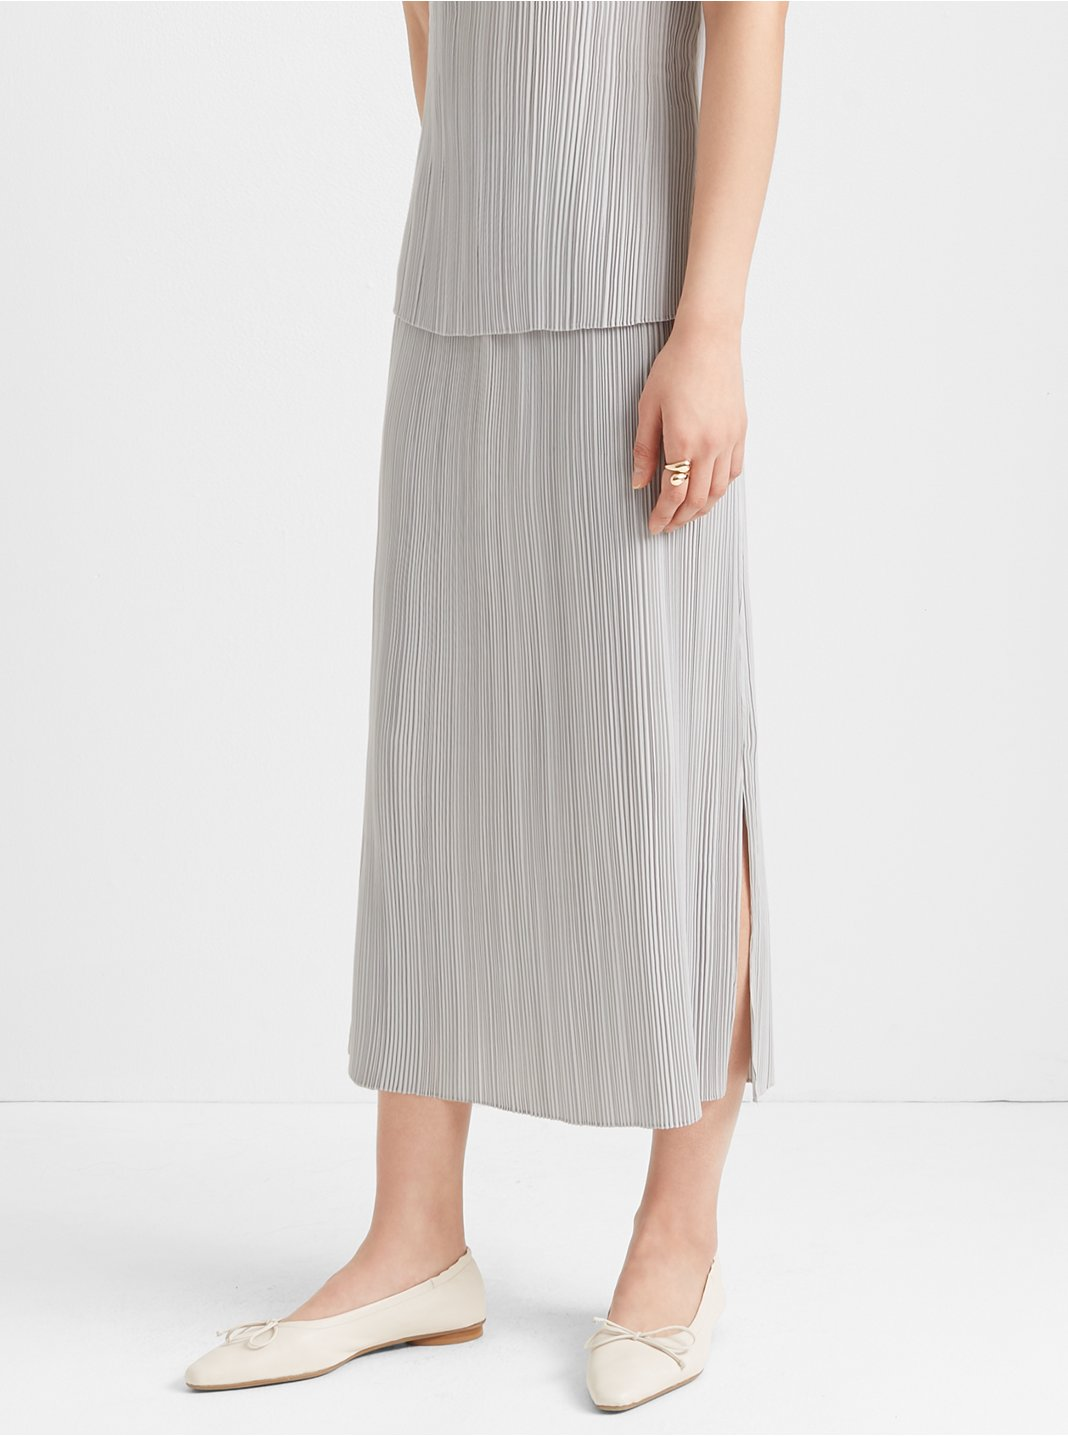 Micropleat Skirt